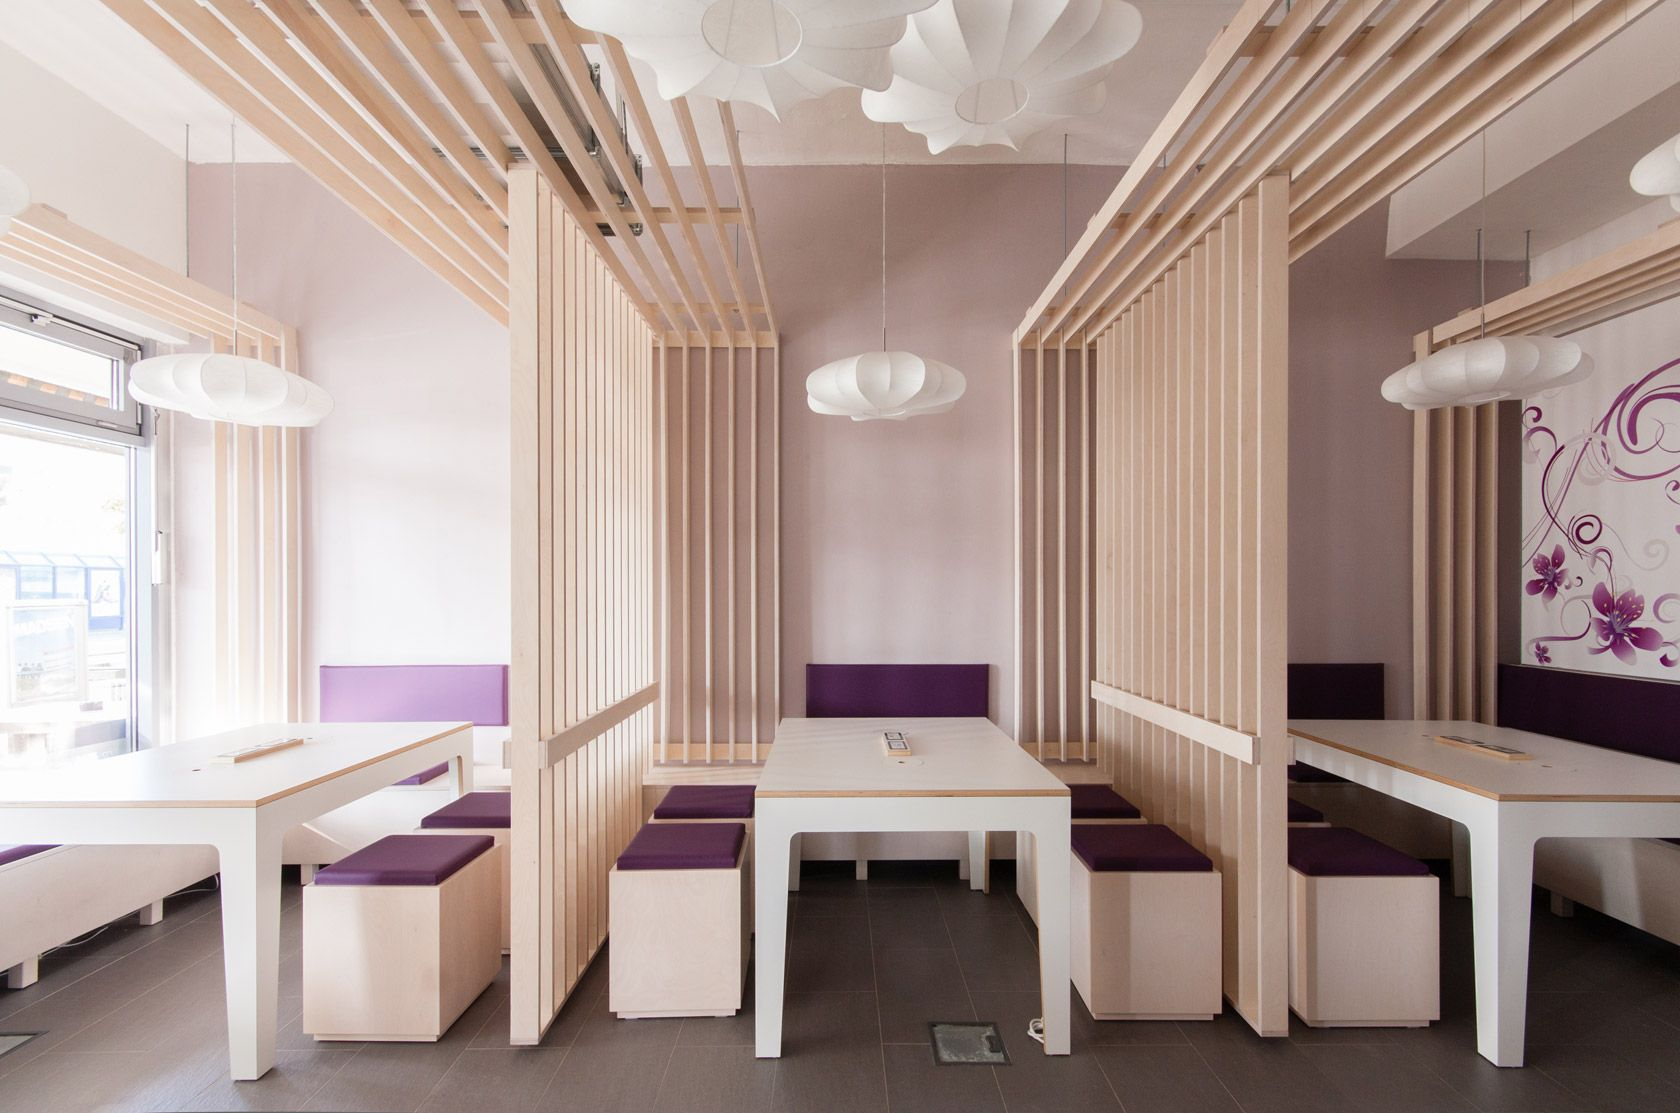 Restaurant Interior Design Ideas Comes With Clean White Interior Decoration  And In Line Plywood Ceiling Themes